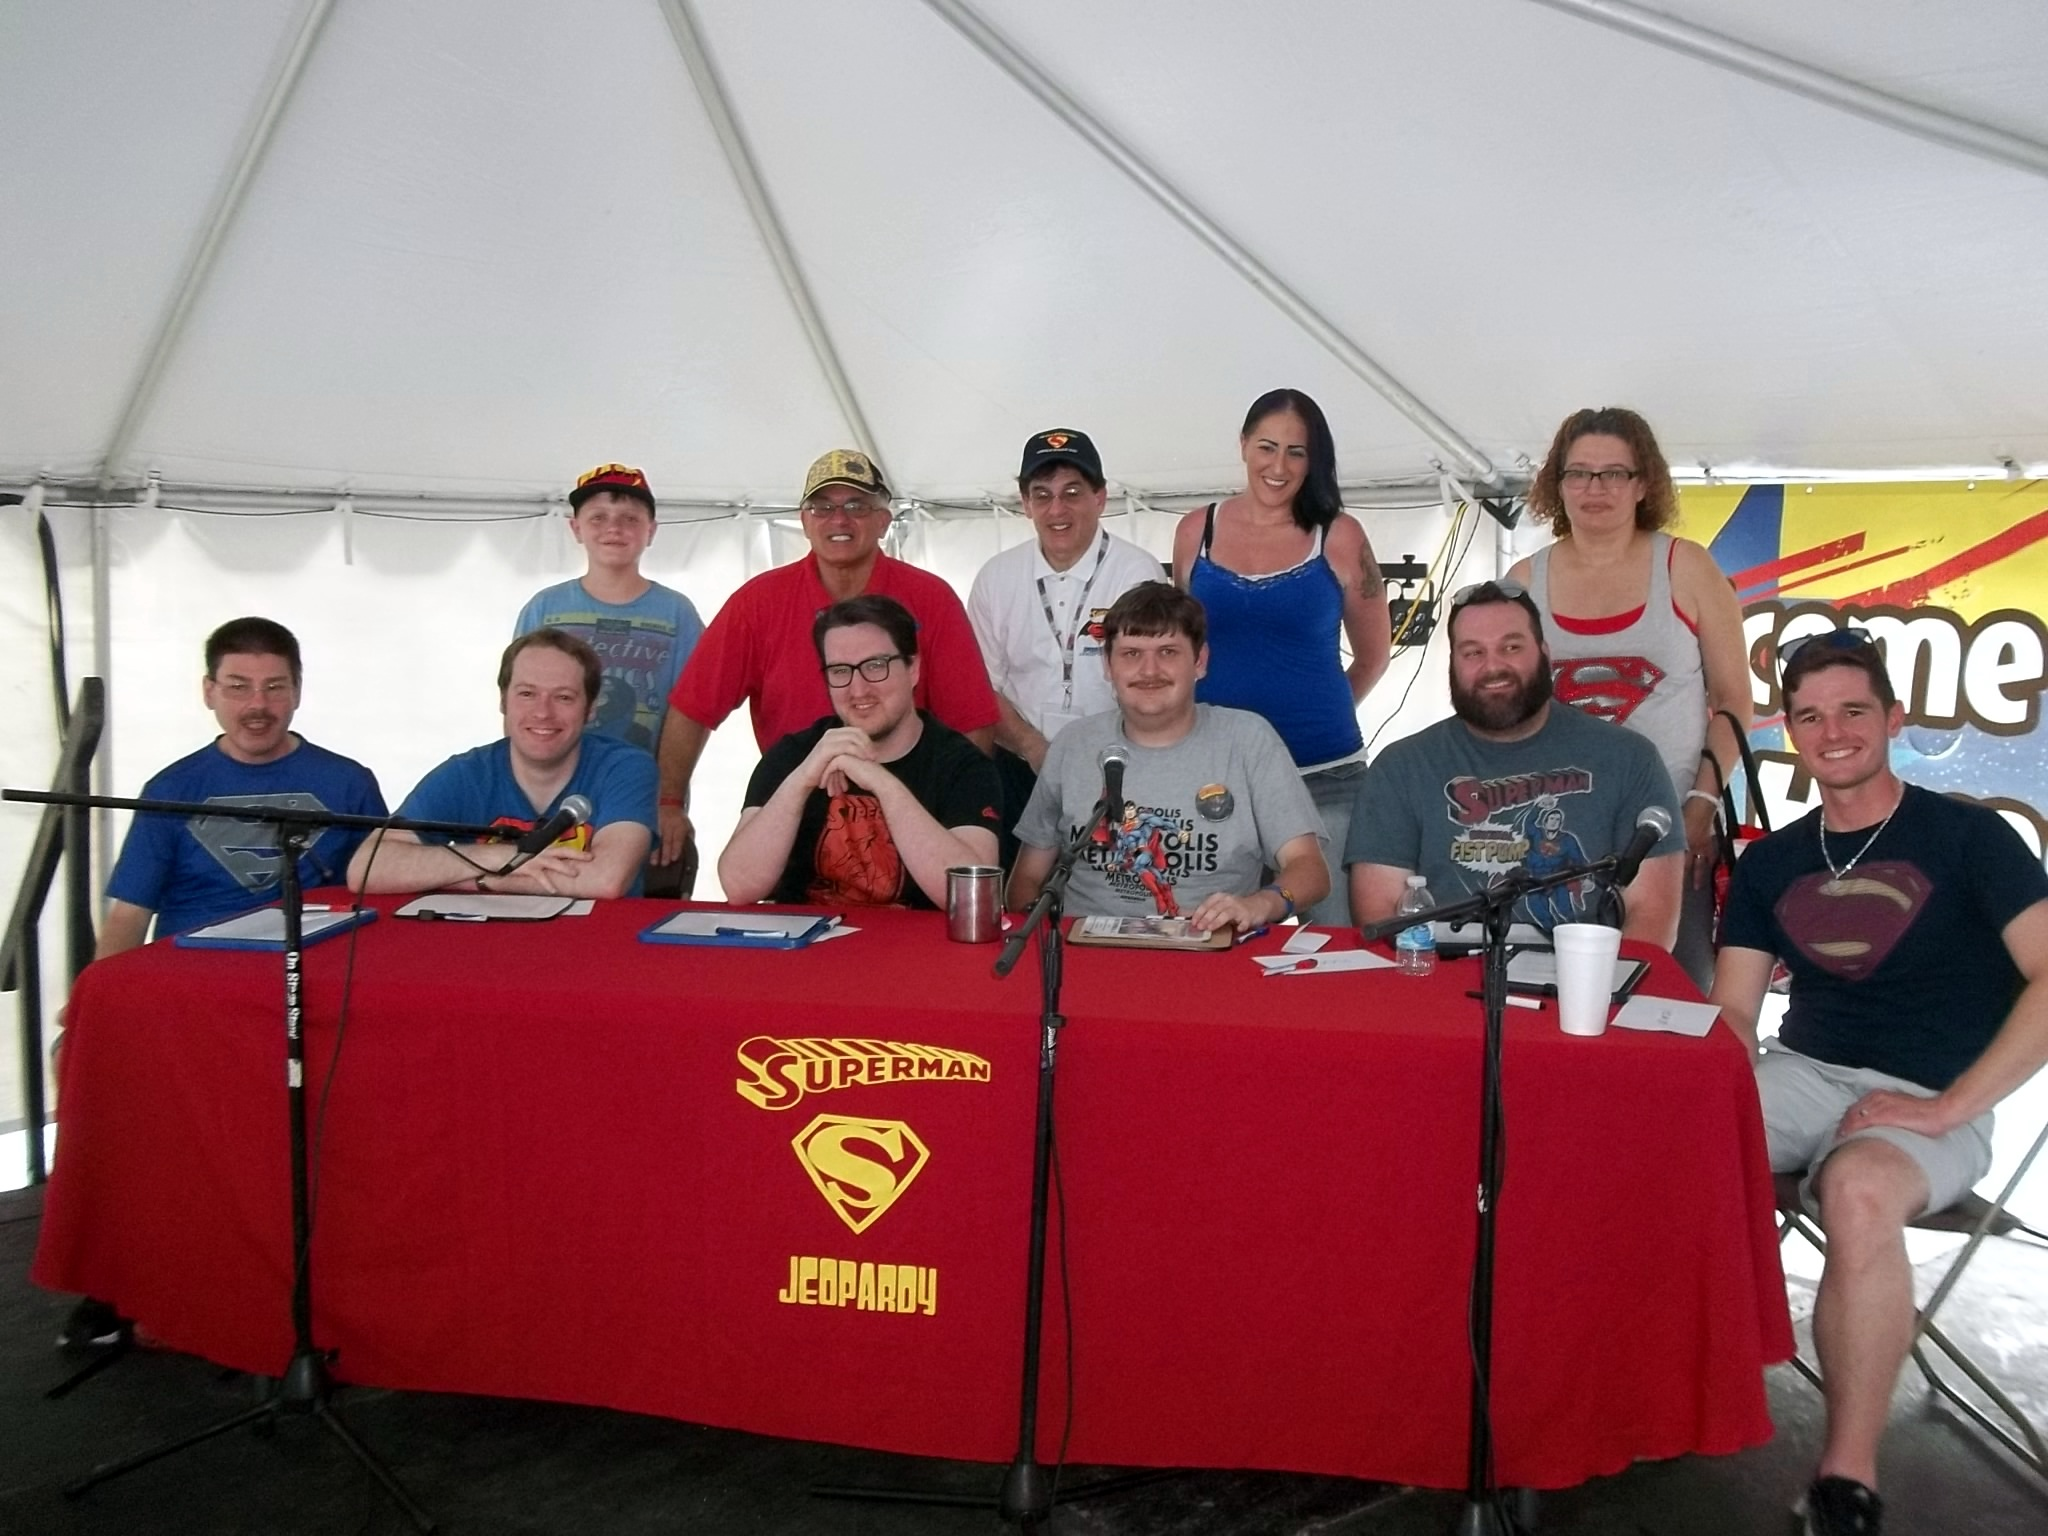 contestants and helpers of the 2016 The USA Boxing News Superman jeopardy Game